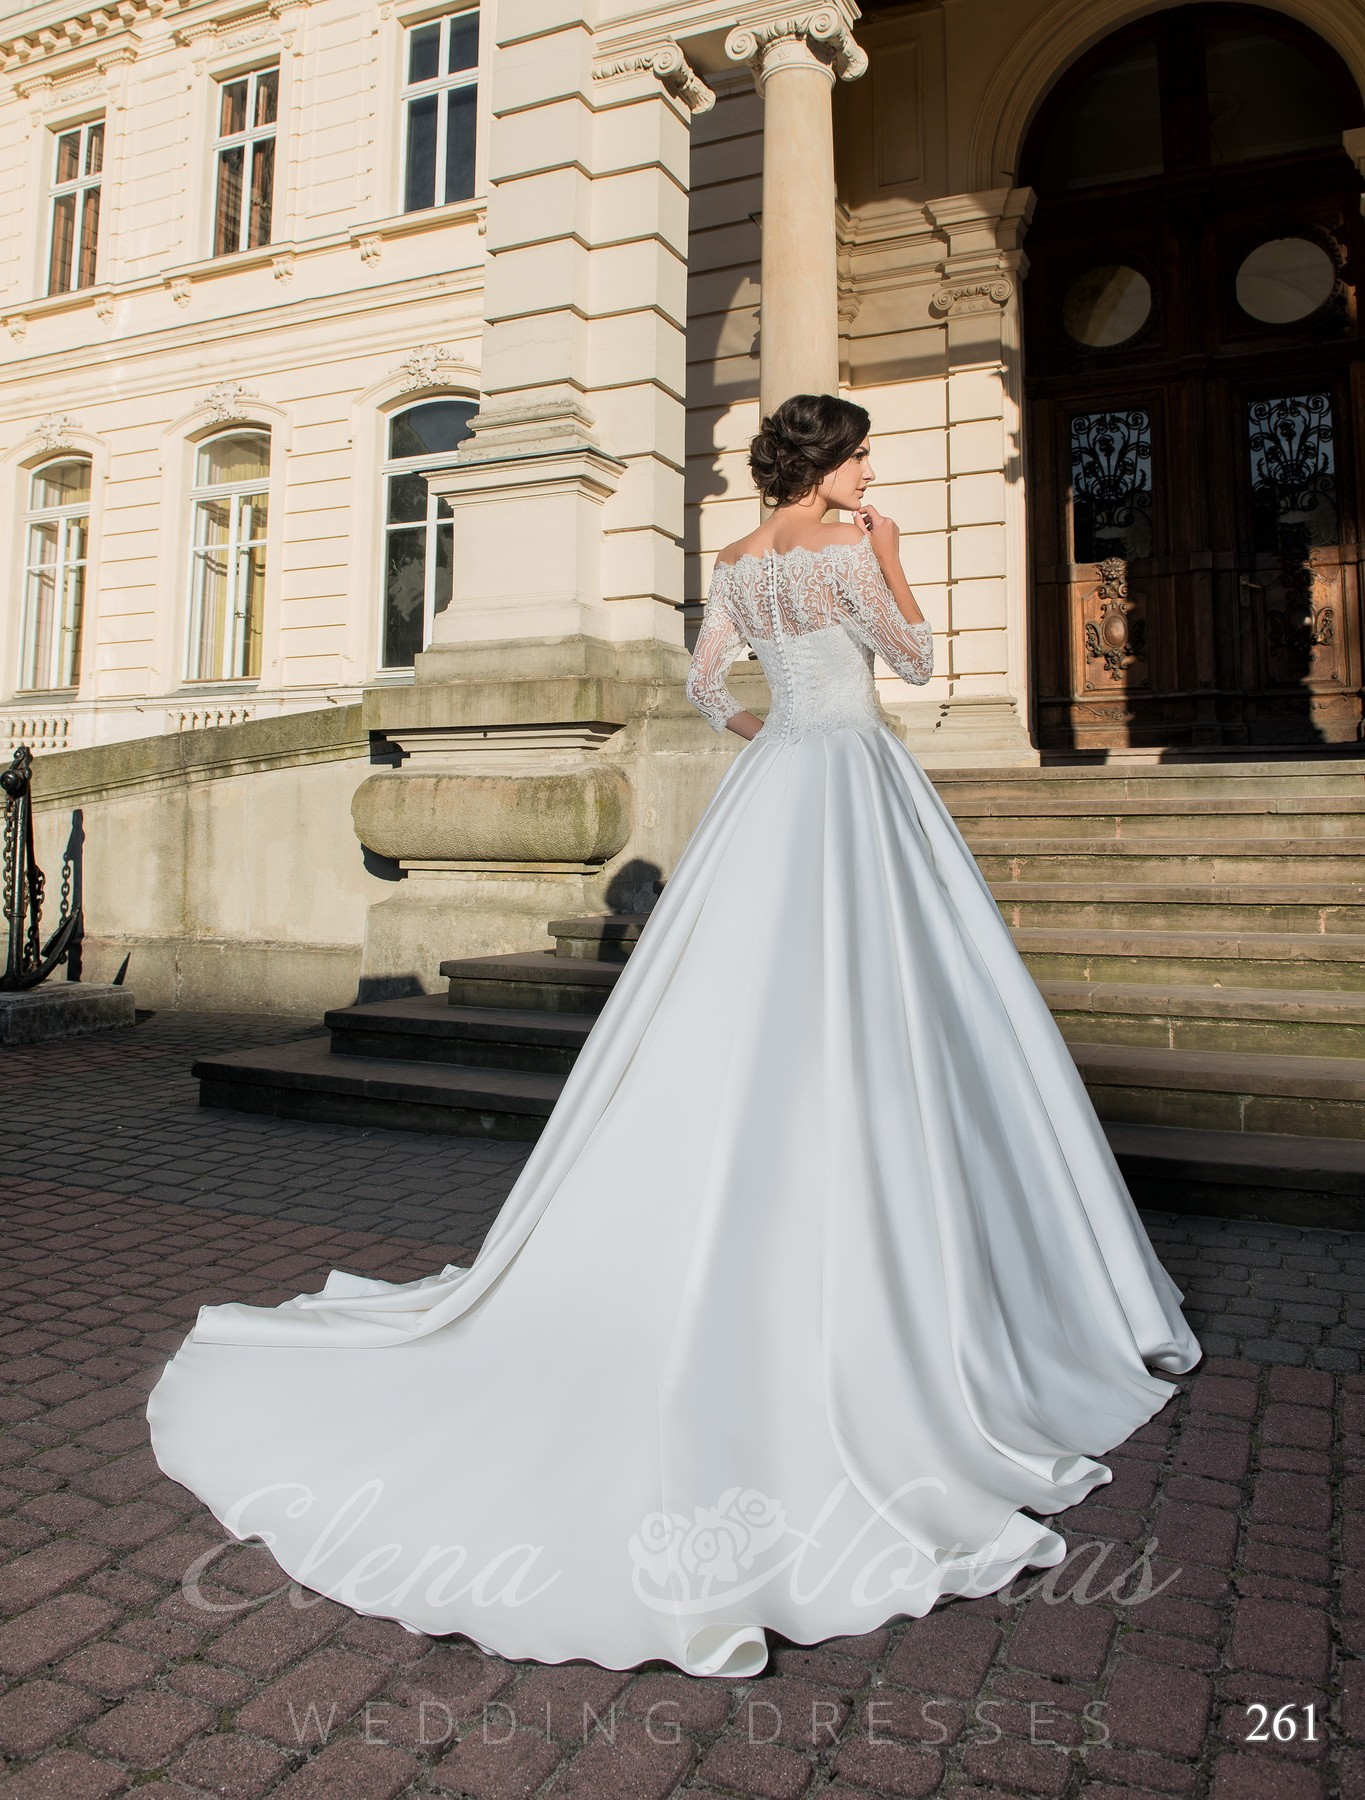 Wedding dress - transformer model 261